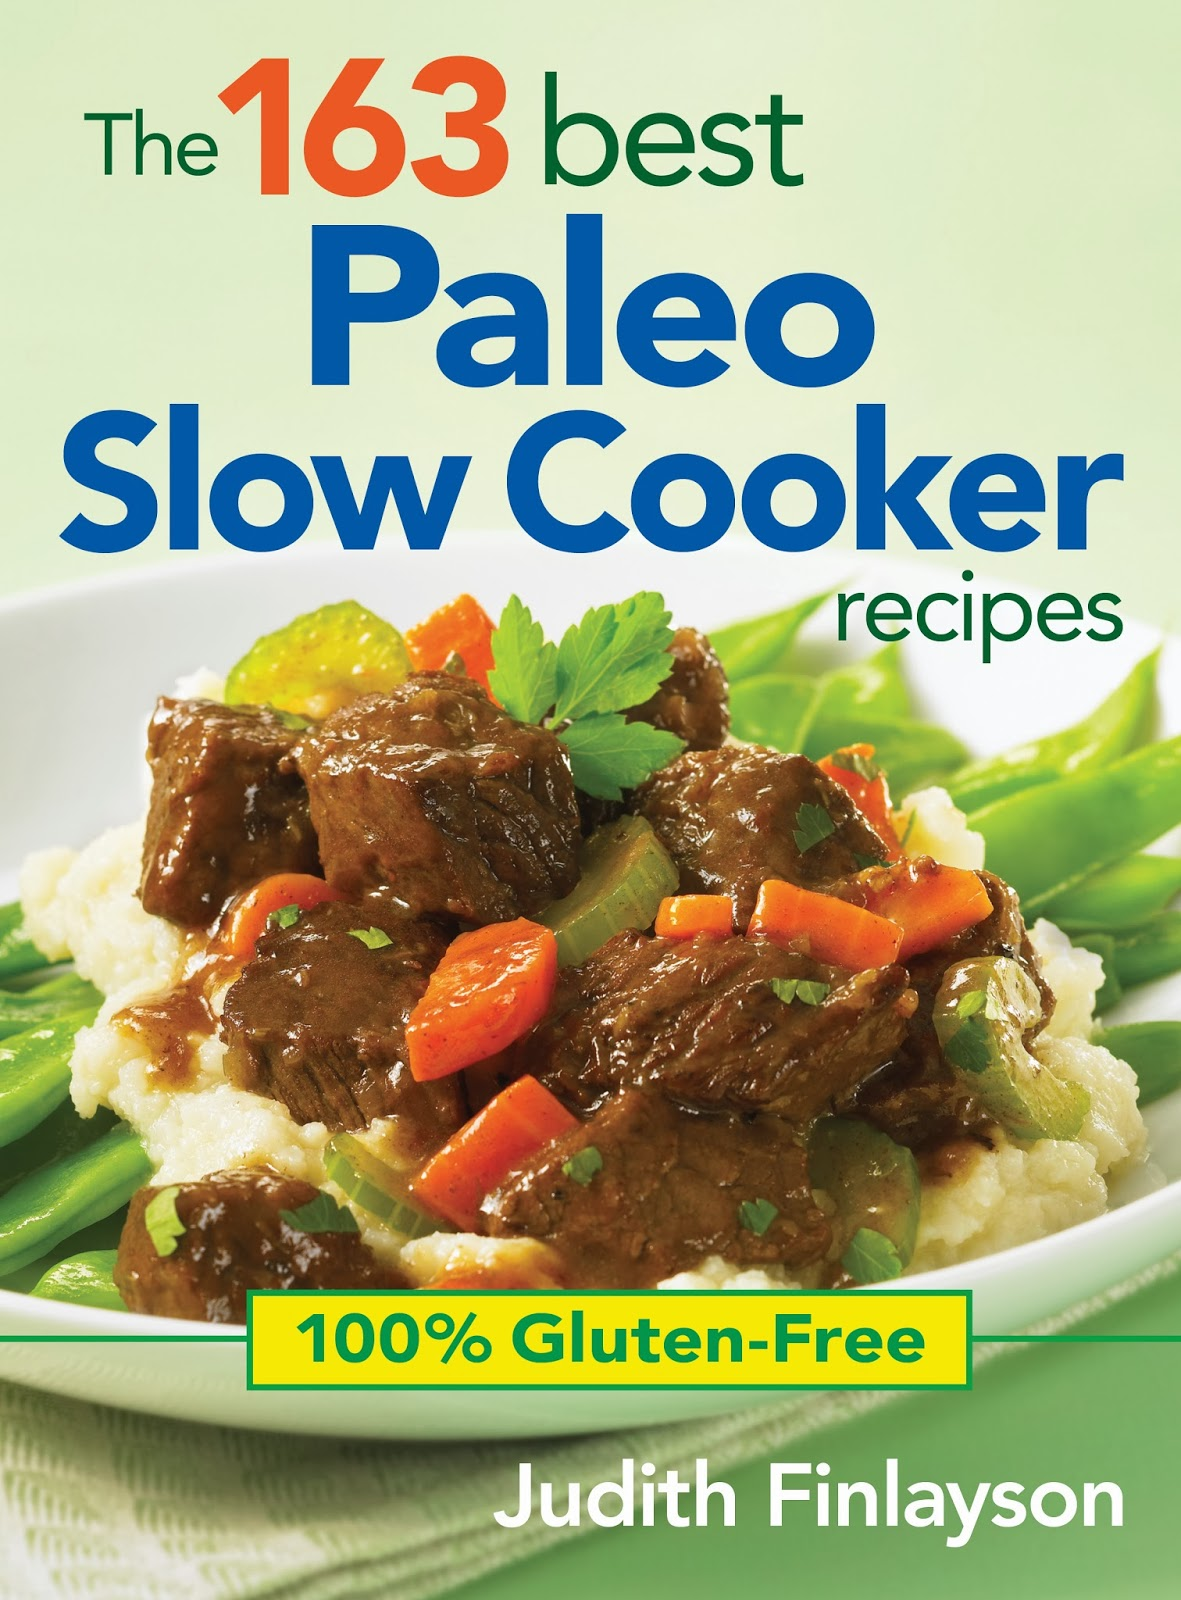 The 163 Best Paleo Slow Cooker Recipes cover